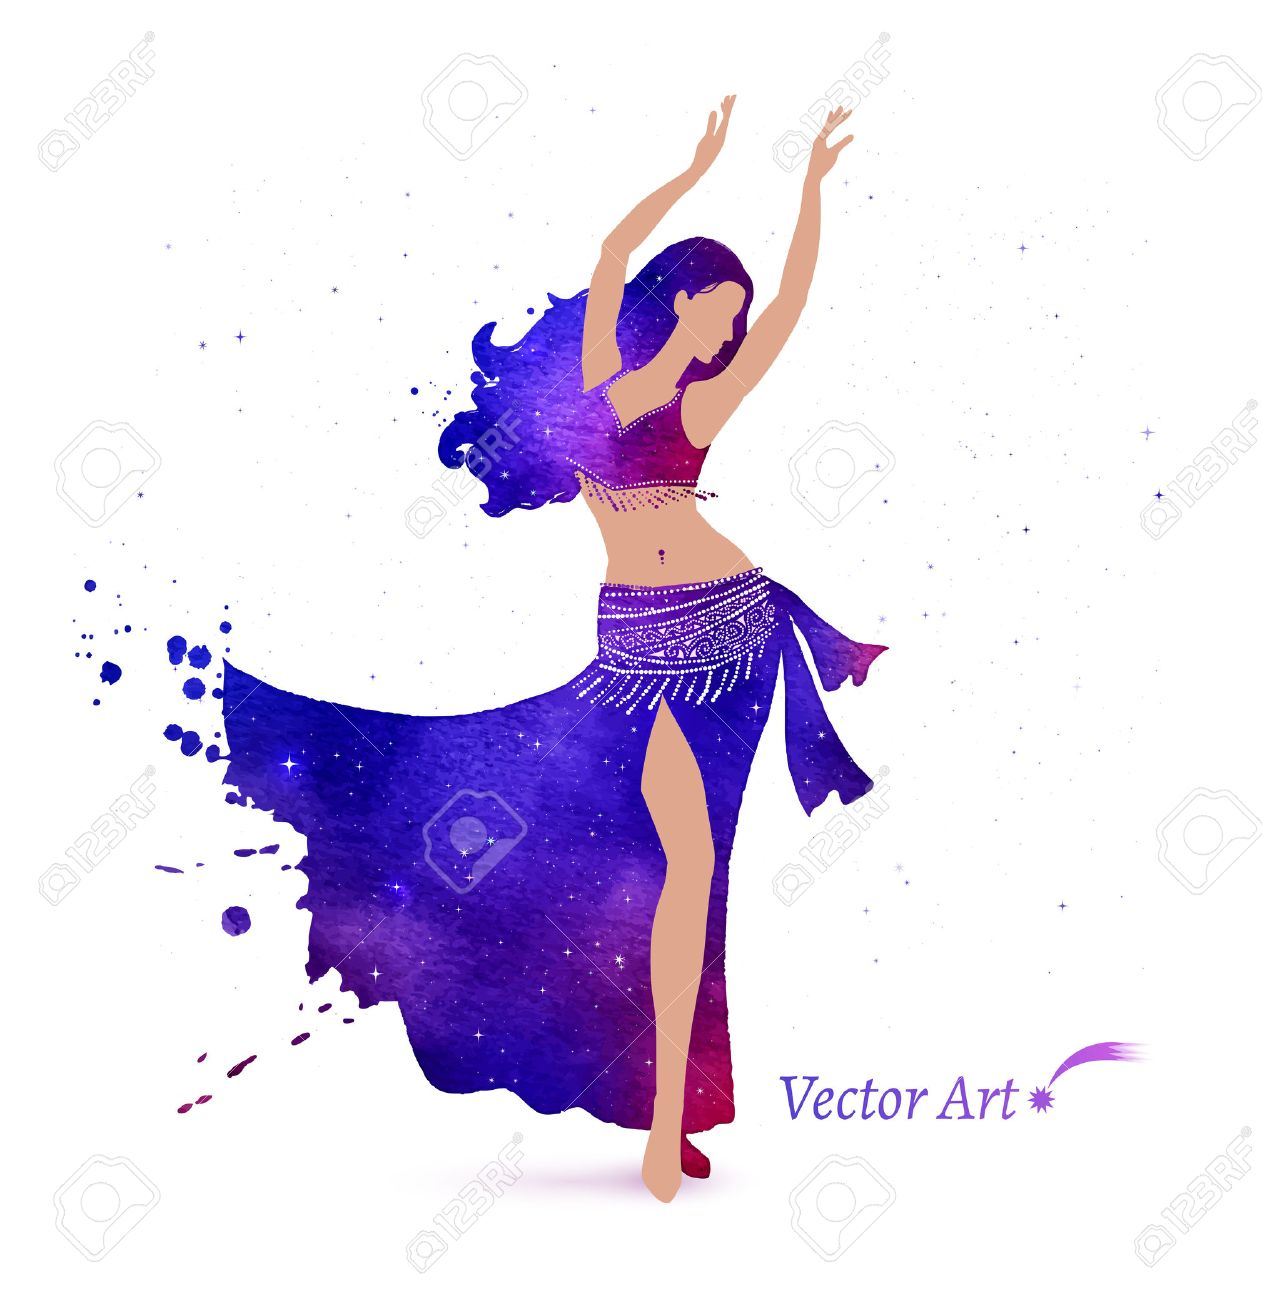 3064eb922c38 Belly dancer with space pattern on dress. Watercolor art. Stock Vector -  38327091